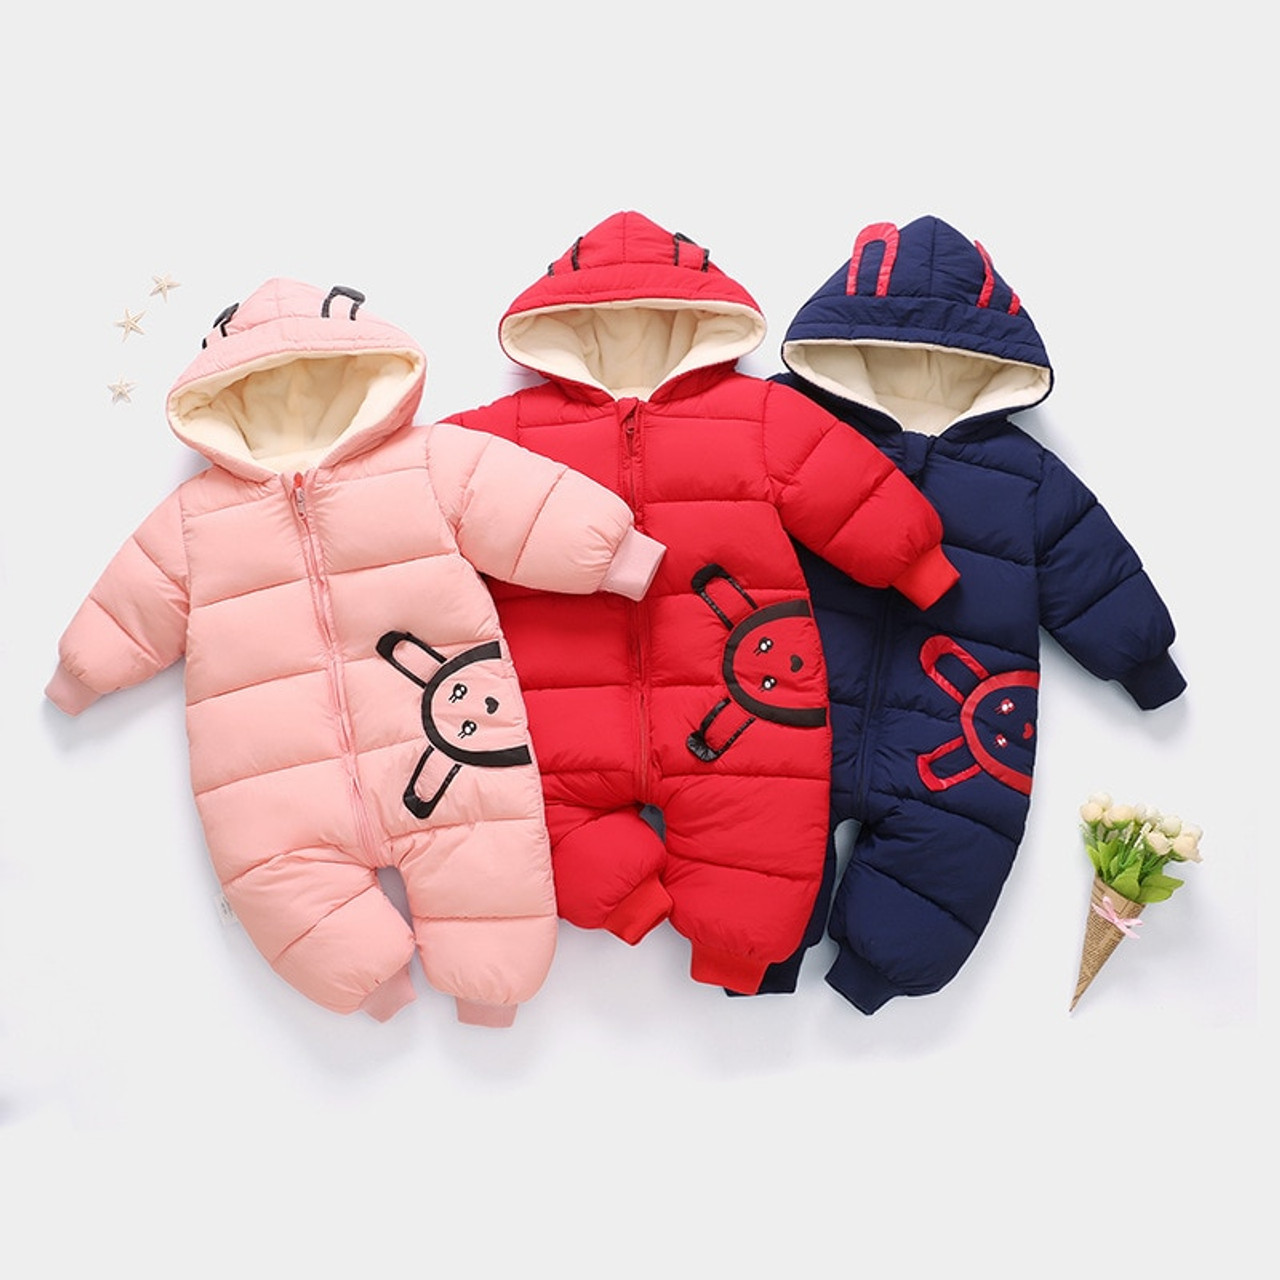 41ccbf3d0 ... Baby Rompers Winter Jackets for Baby Girls Clothing Spring Autumn Coats  Rabbit Ear Style Overalls For ...